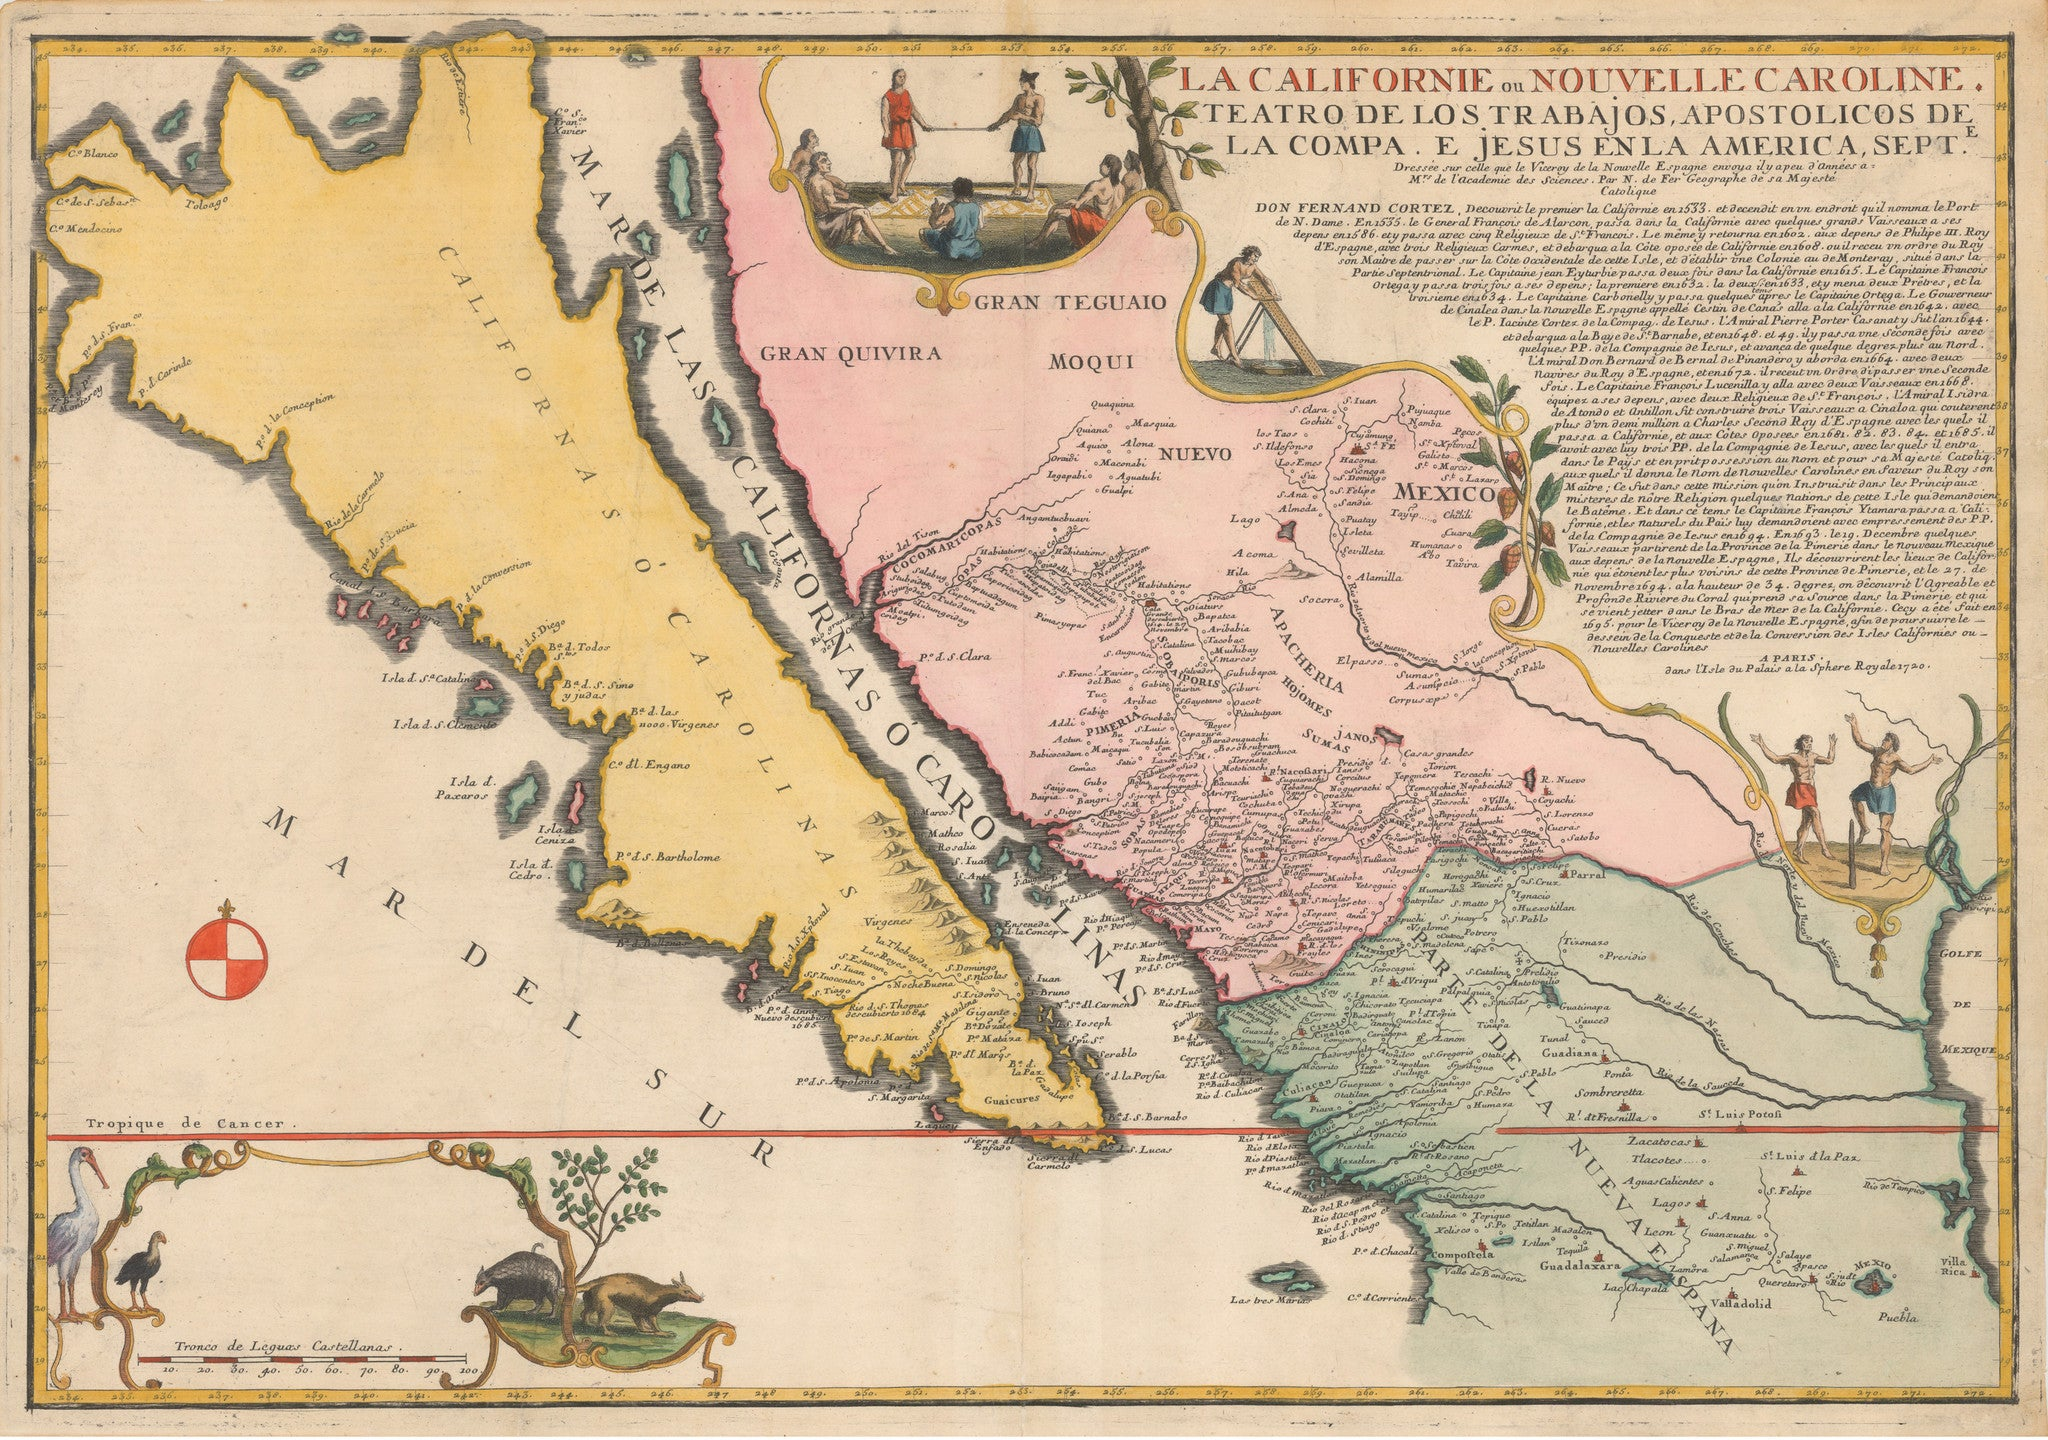 Map Of California As An Island By De Fer 1720 Thevintagemapshop - Us-map-la